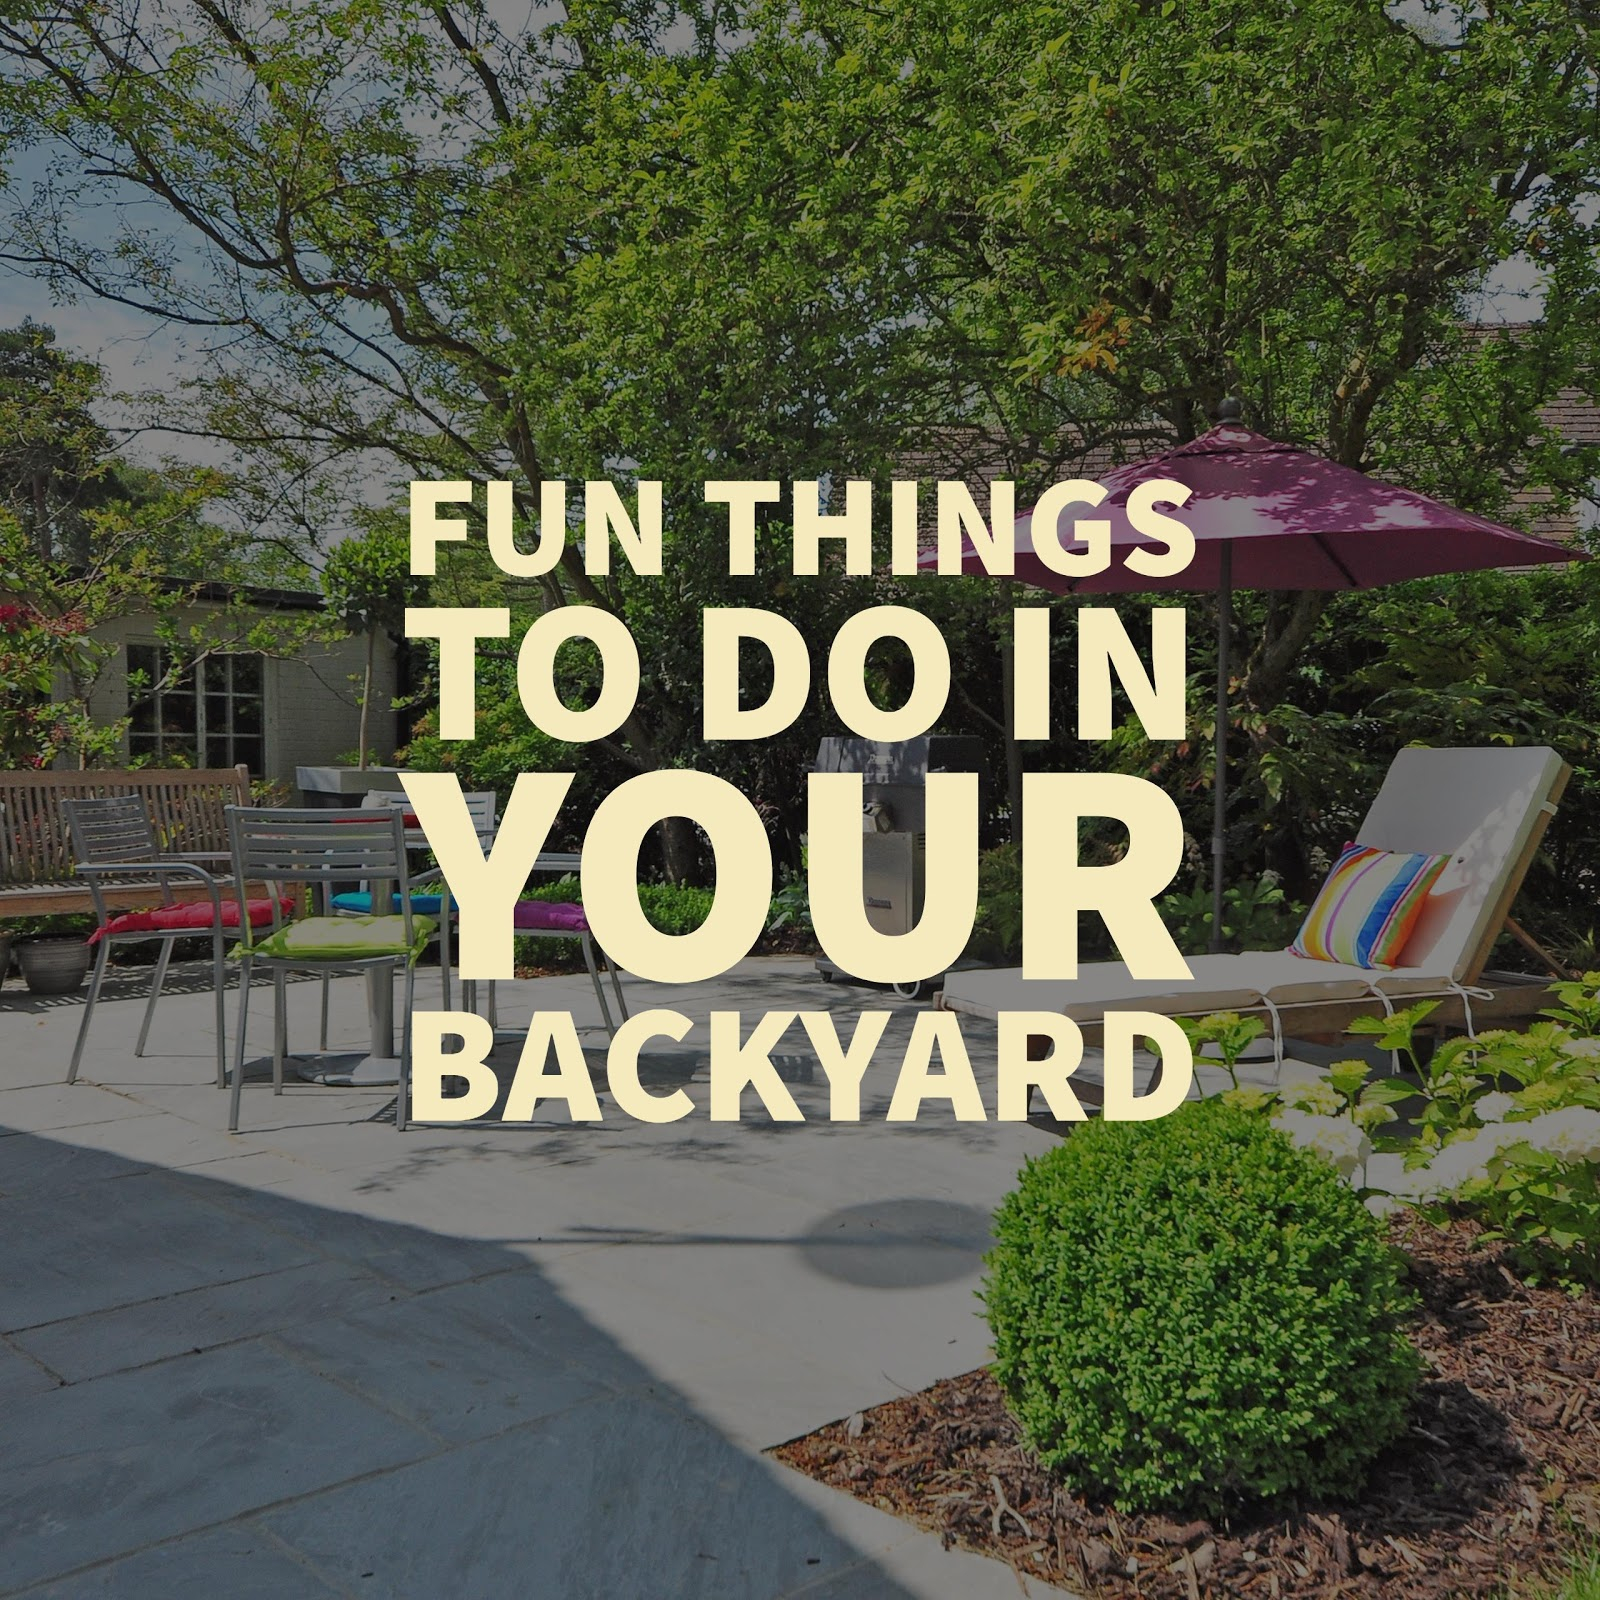 Elite Fun Things To Do In Your Backyard - Anne E. Koons - Your Local Real regarding Best of Fun Things To Do In Your Backyard